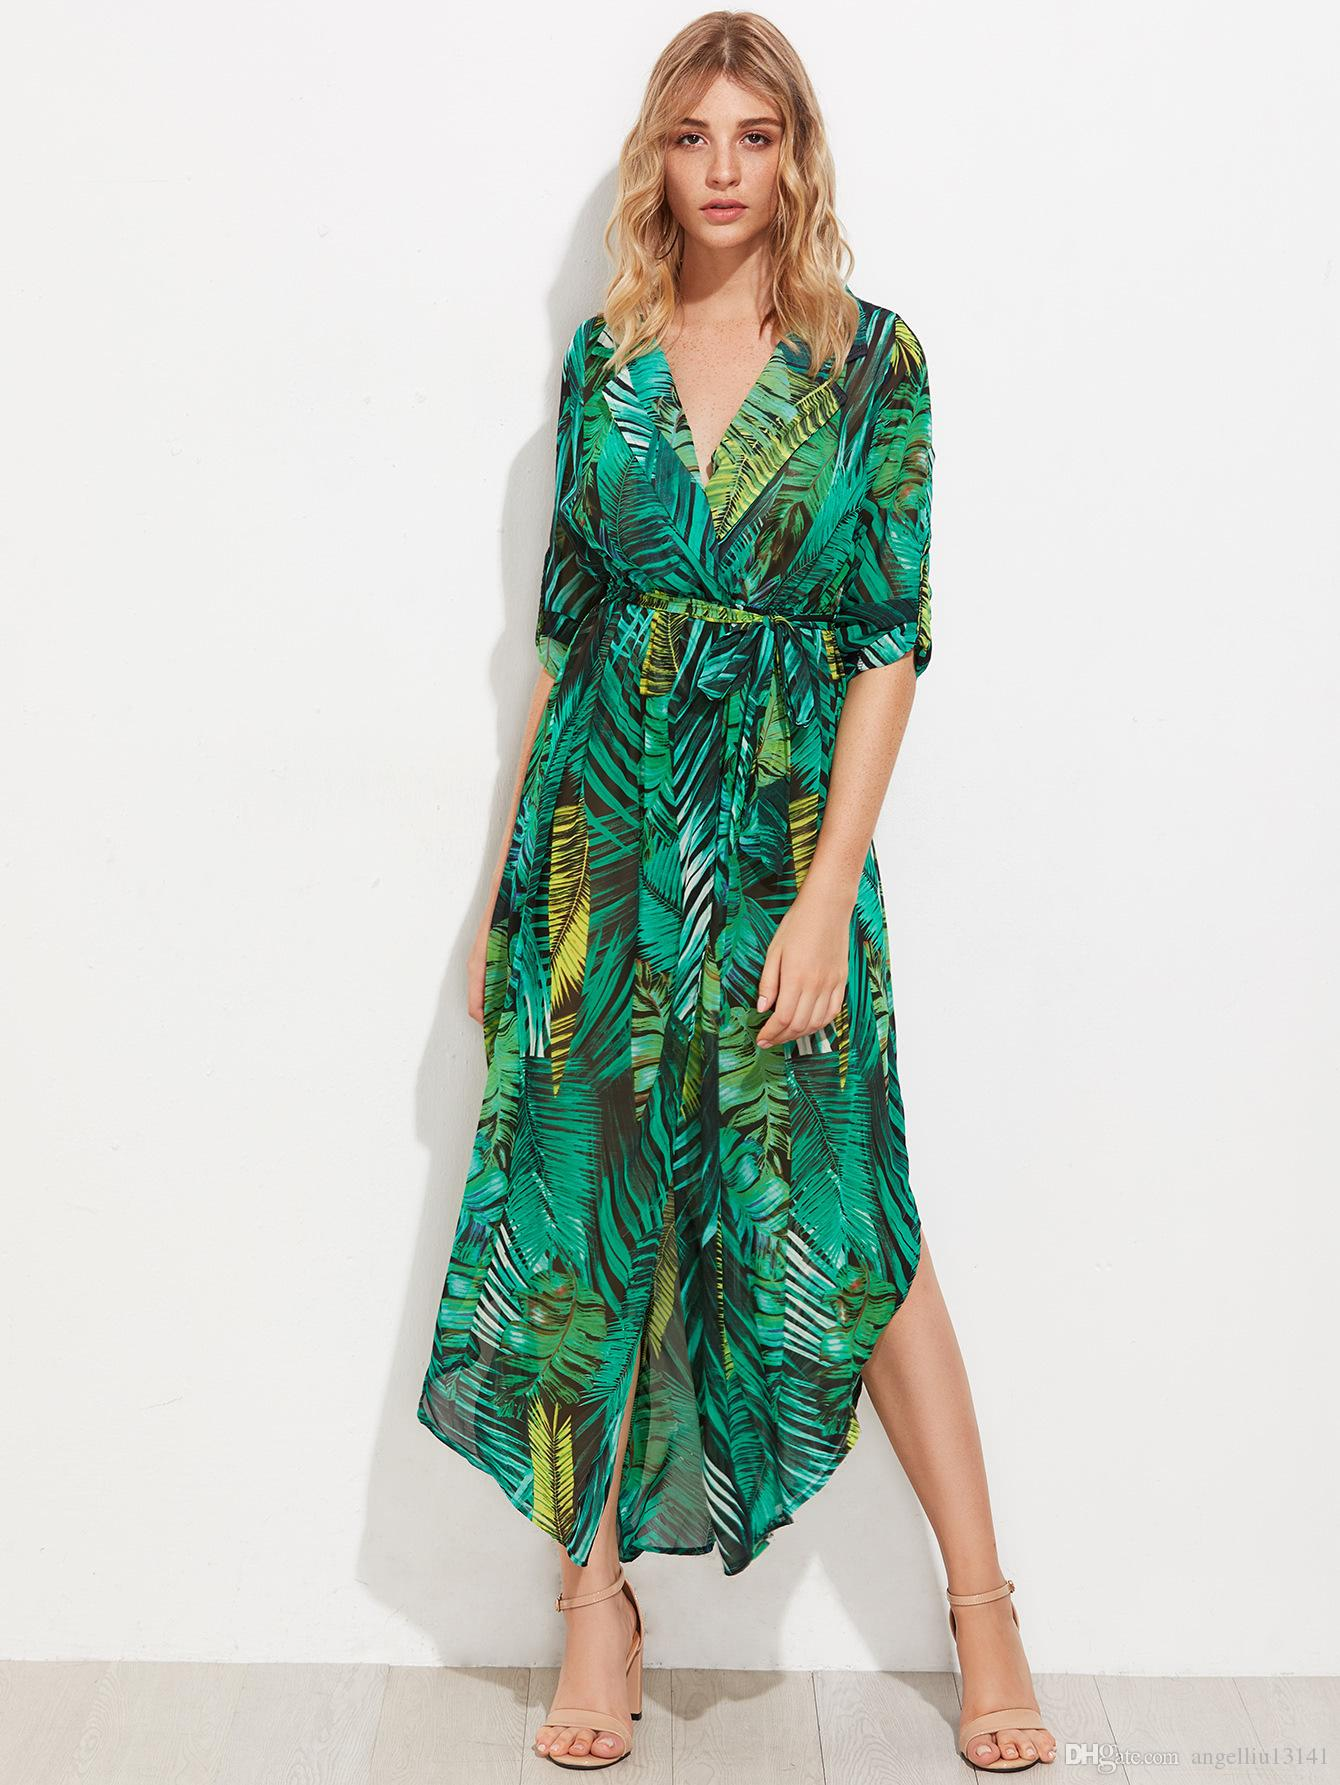 c396d140041 Casual dresses are the most commonly seen dresses for women among all  clothing. A pair of going out dresses can make woman look soft and charming  more than ...